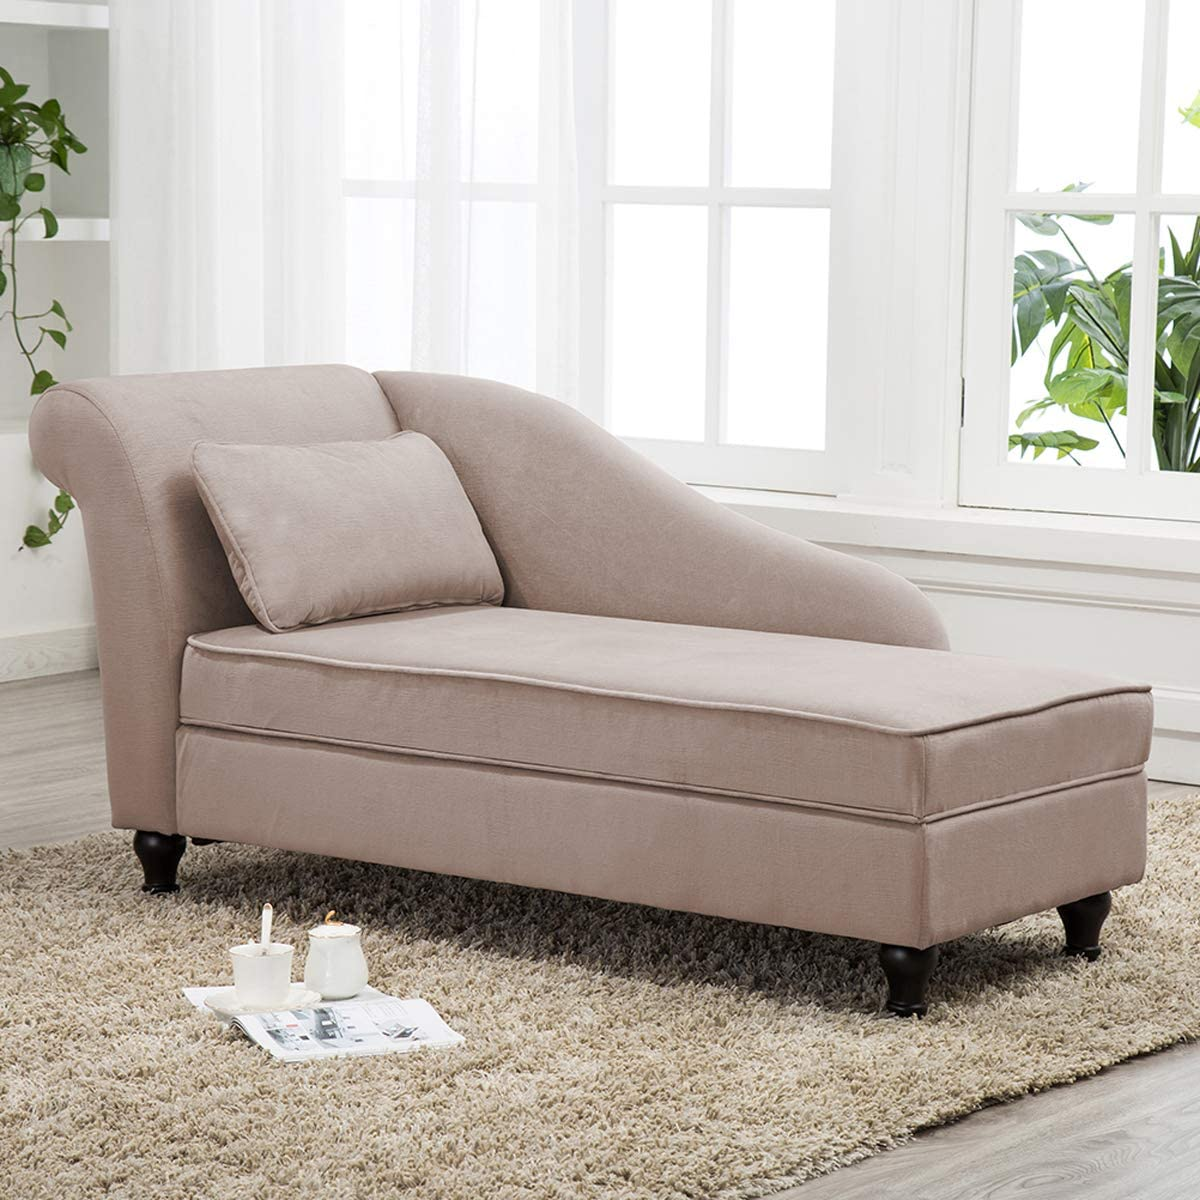 - Amazon.com: Chaise Lounge Storage Upholstered Sofa Lounge Chair